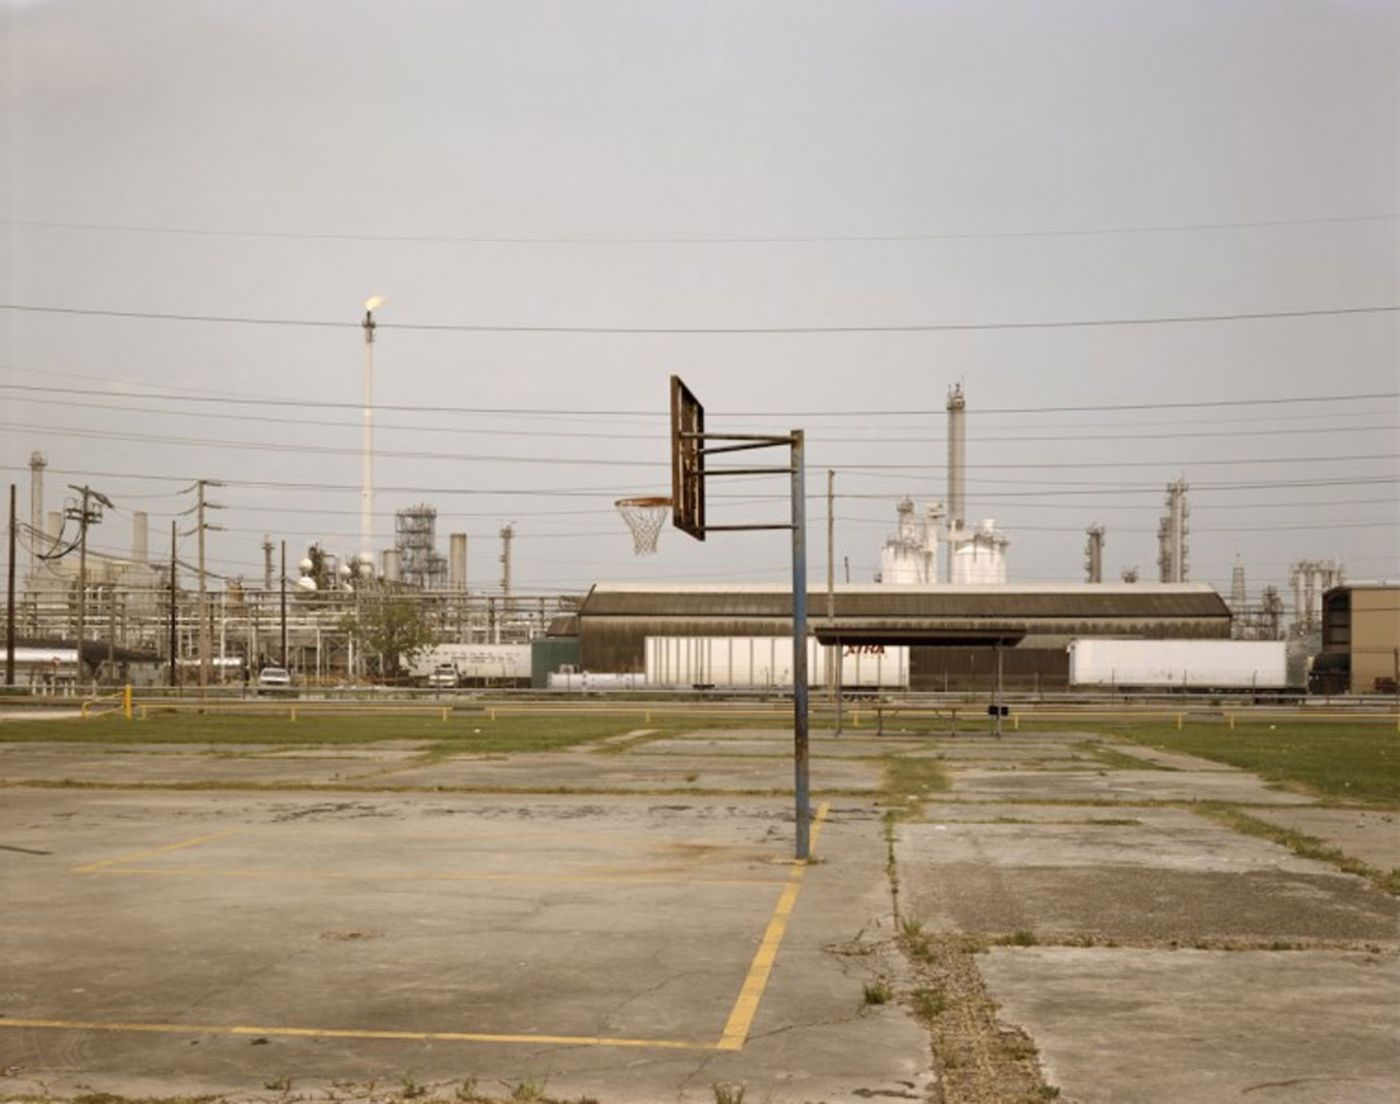 Richard Misrach & Kate Orff: Petrochemical America [SIGNED by Misrach and Orff]